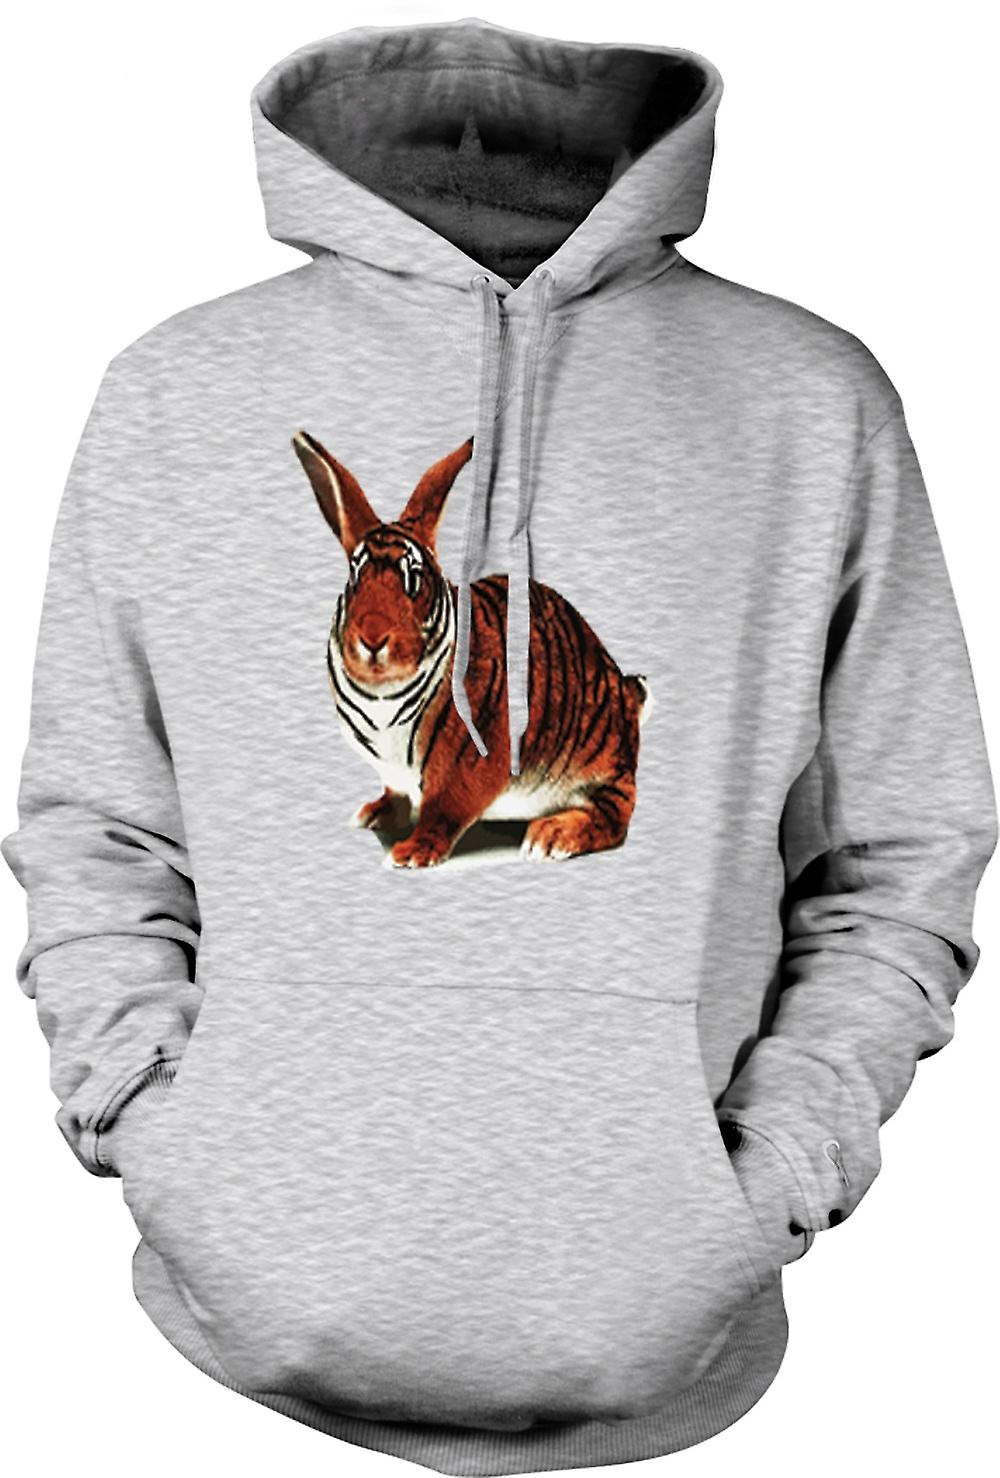 Mens Hoodie - Tiger kanin Pop Art Design